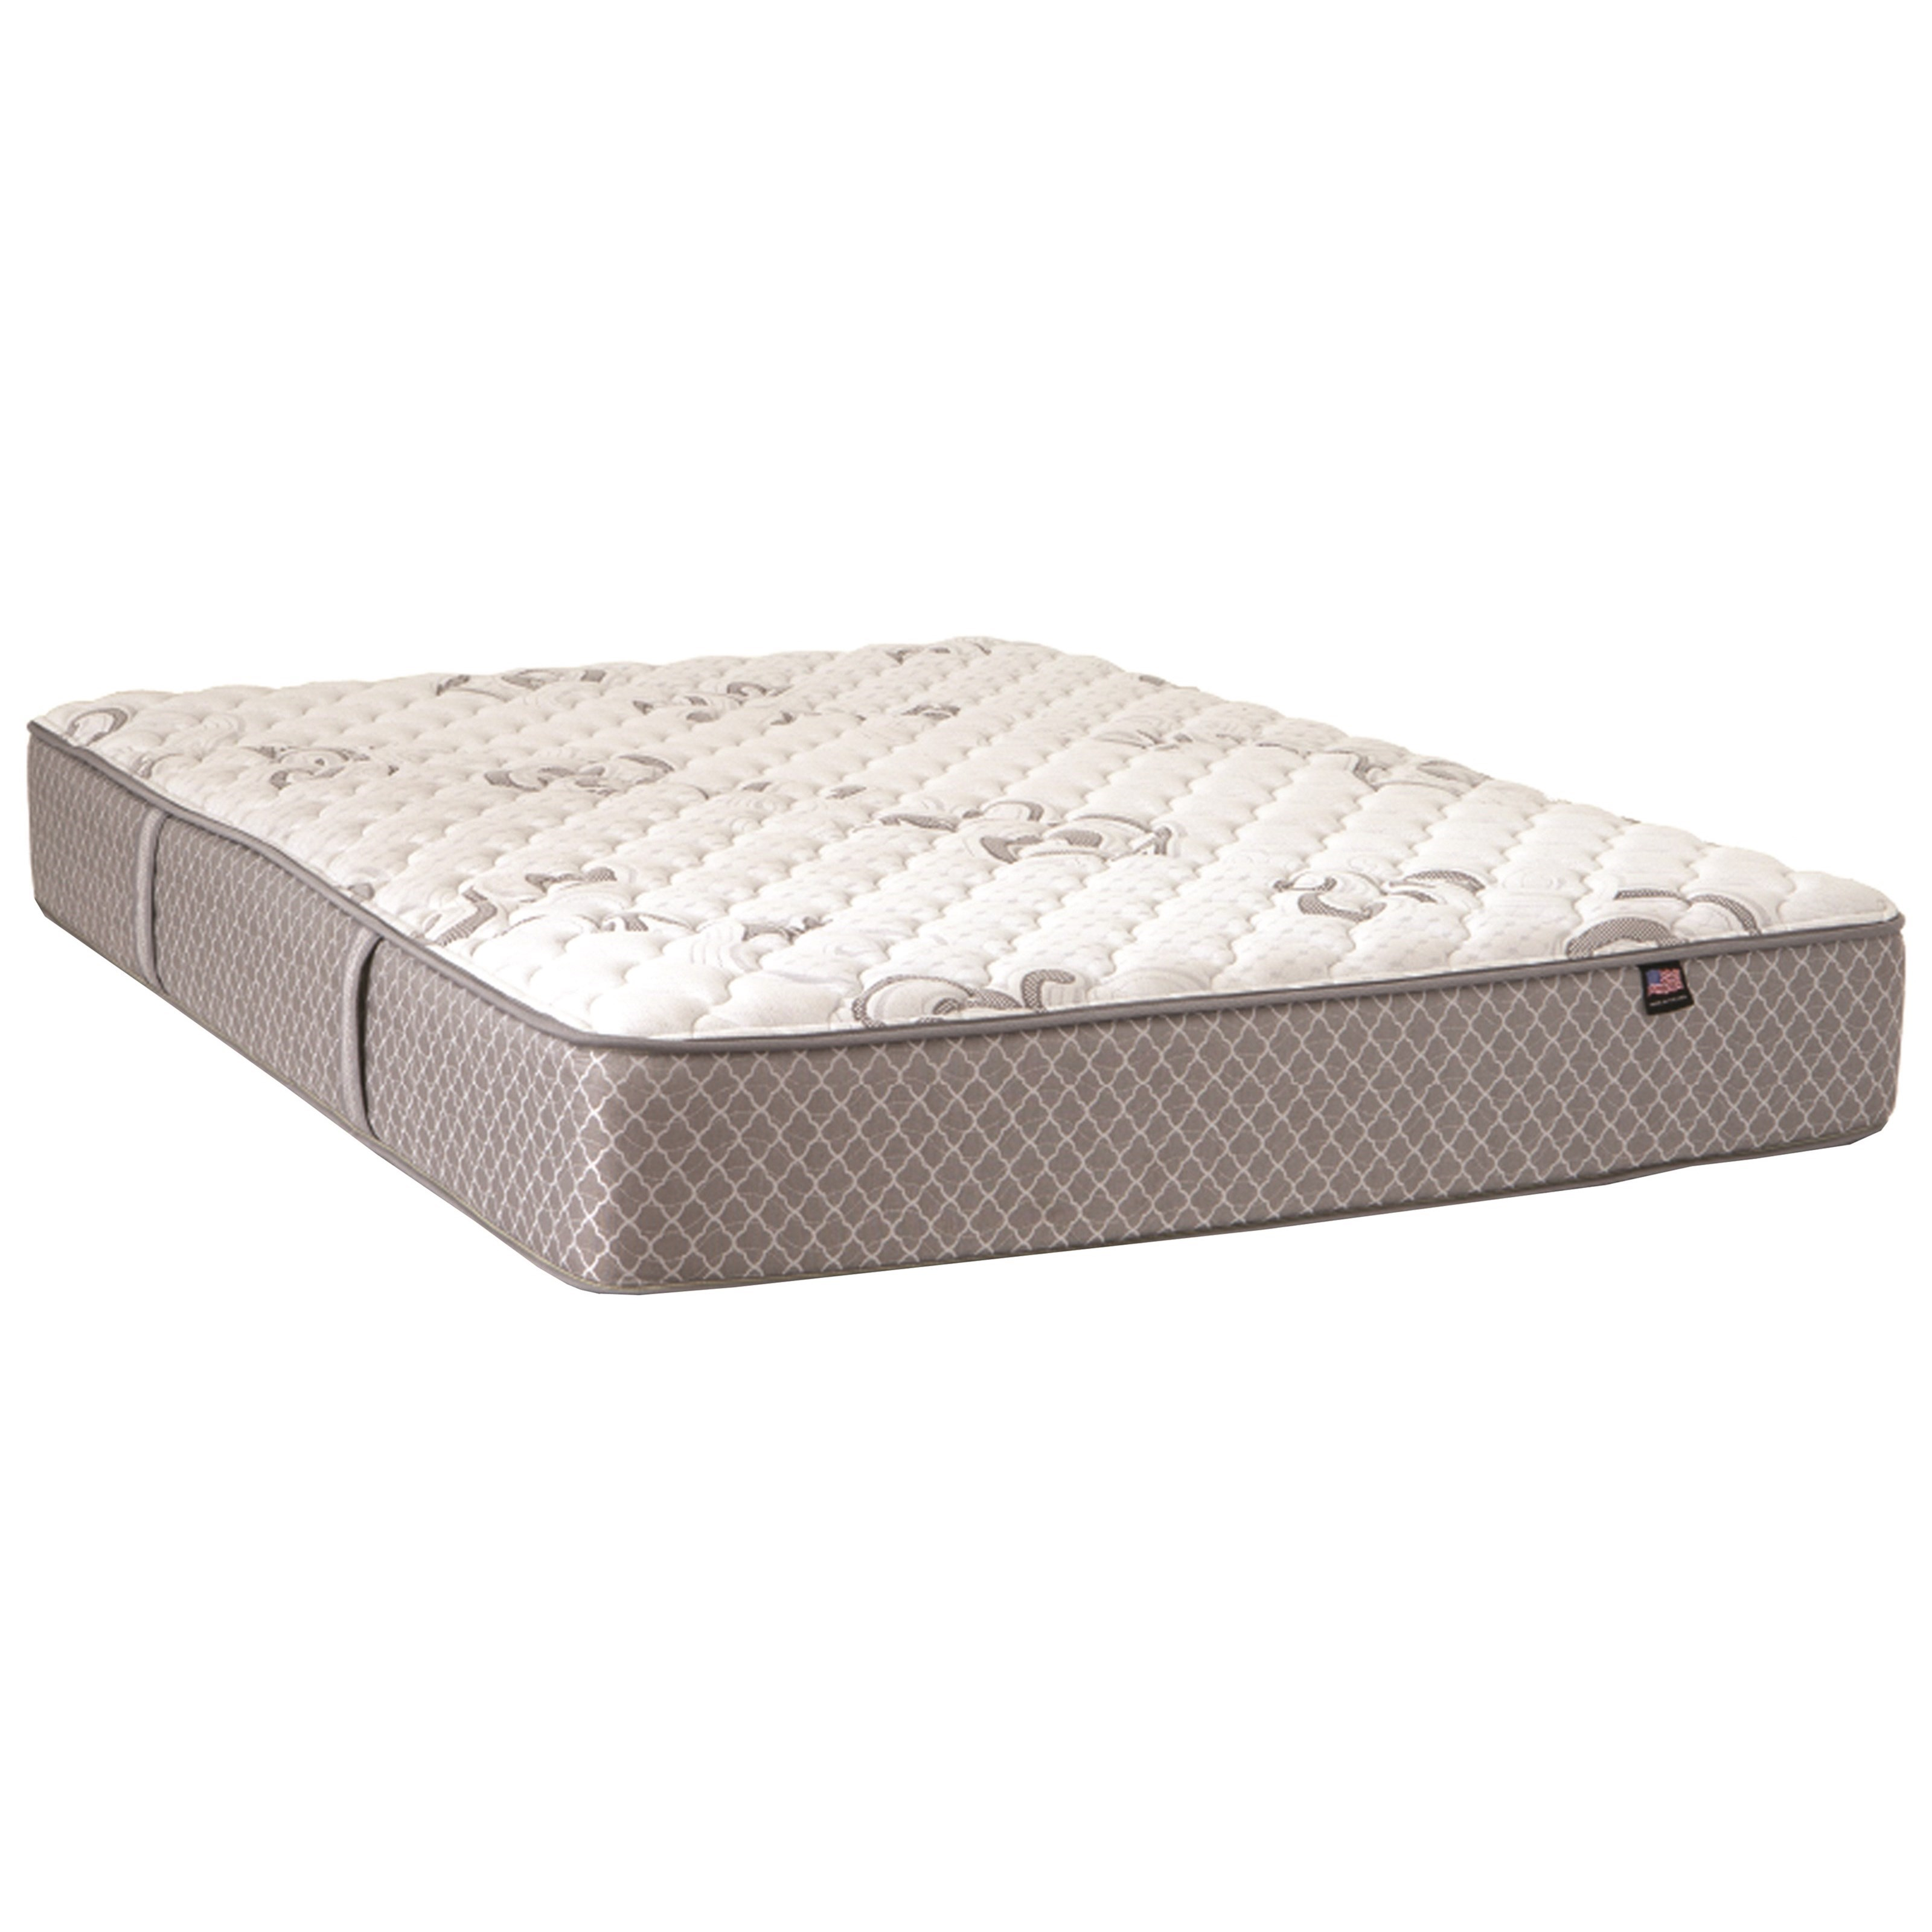 Gramercy Park Plush Queen Plush Mattress by Therapedic at Darvin Furniture